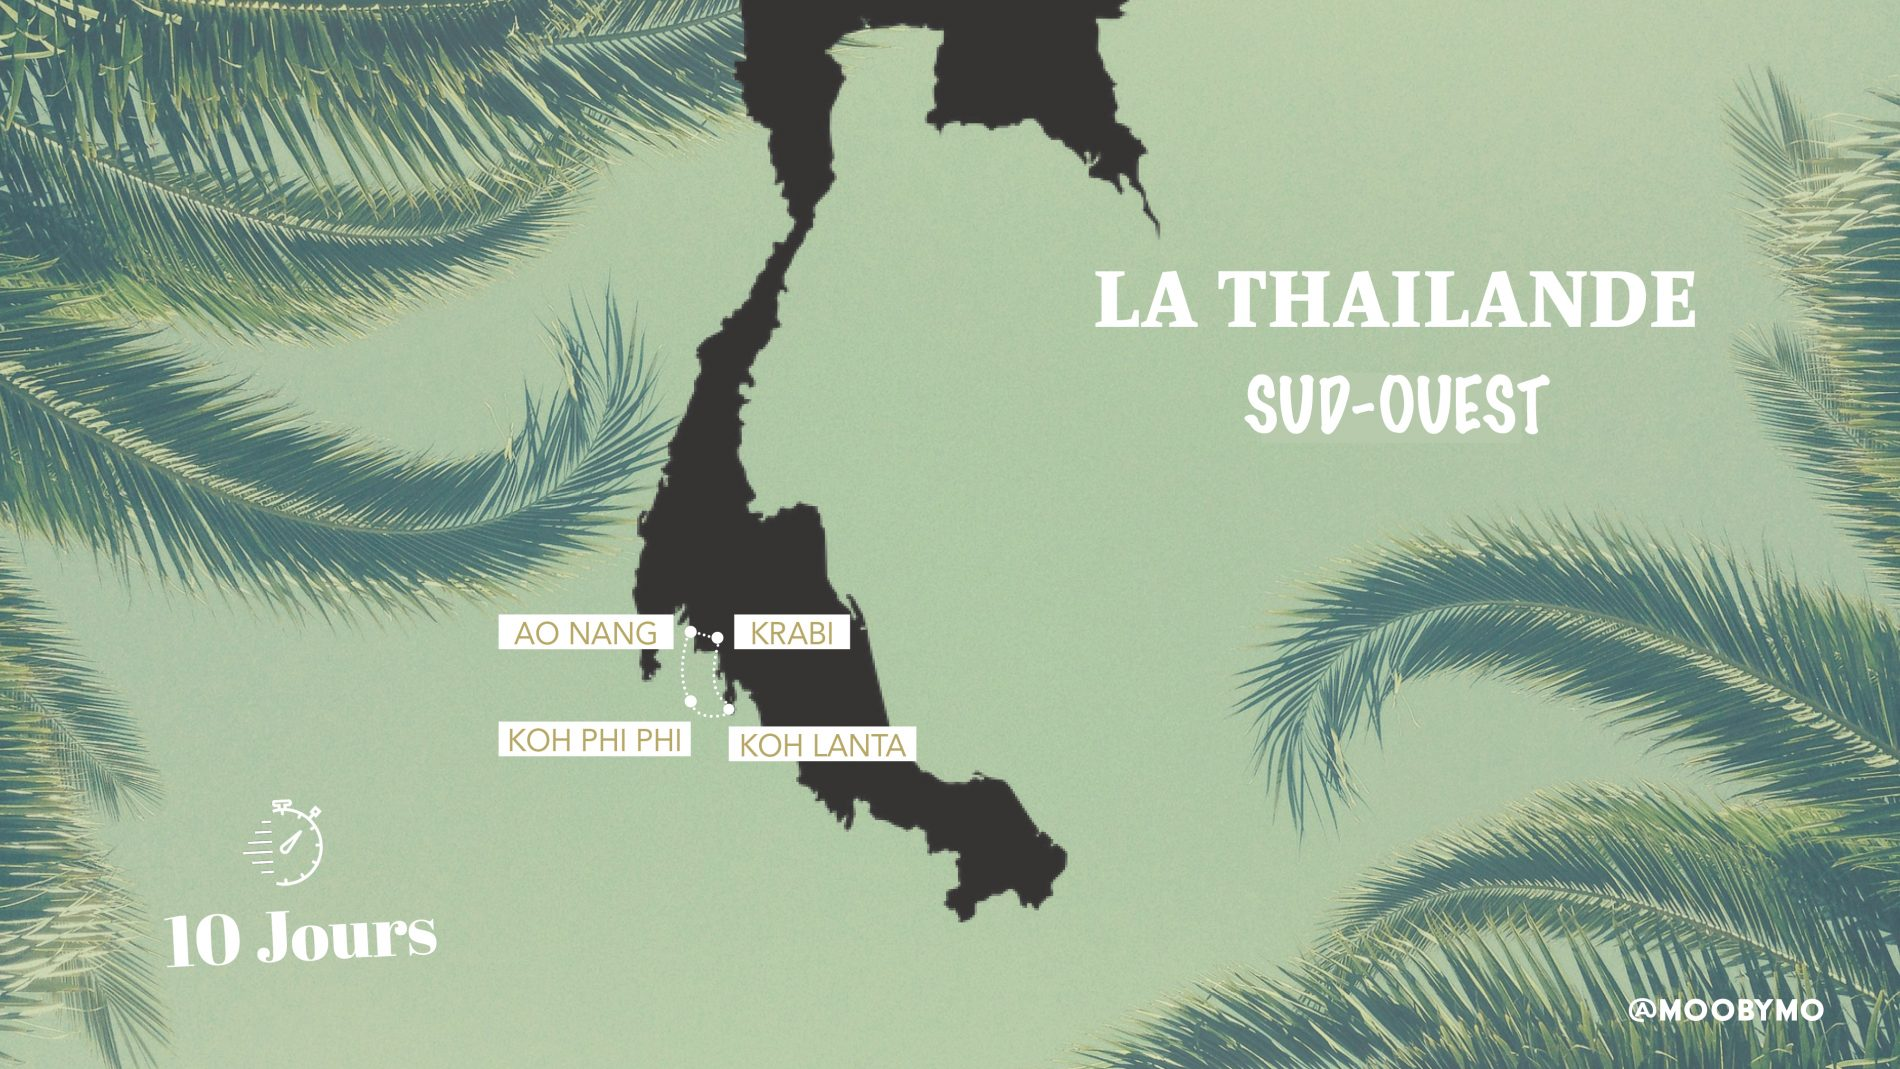 THAILANDE-SUD-OUEST-MOOBYMO